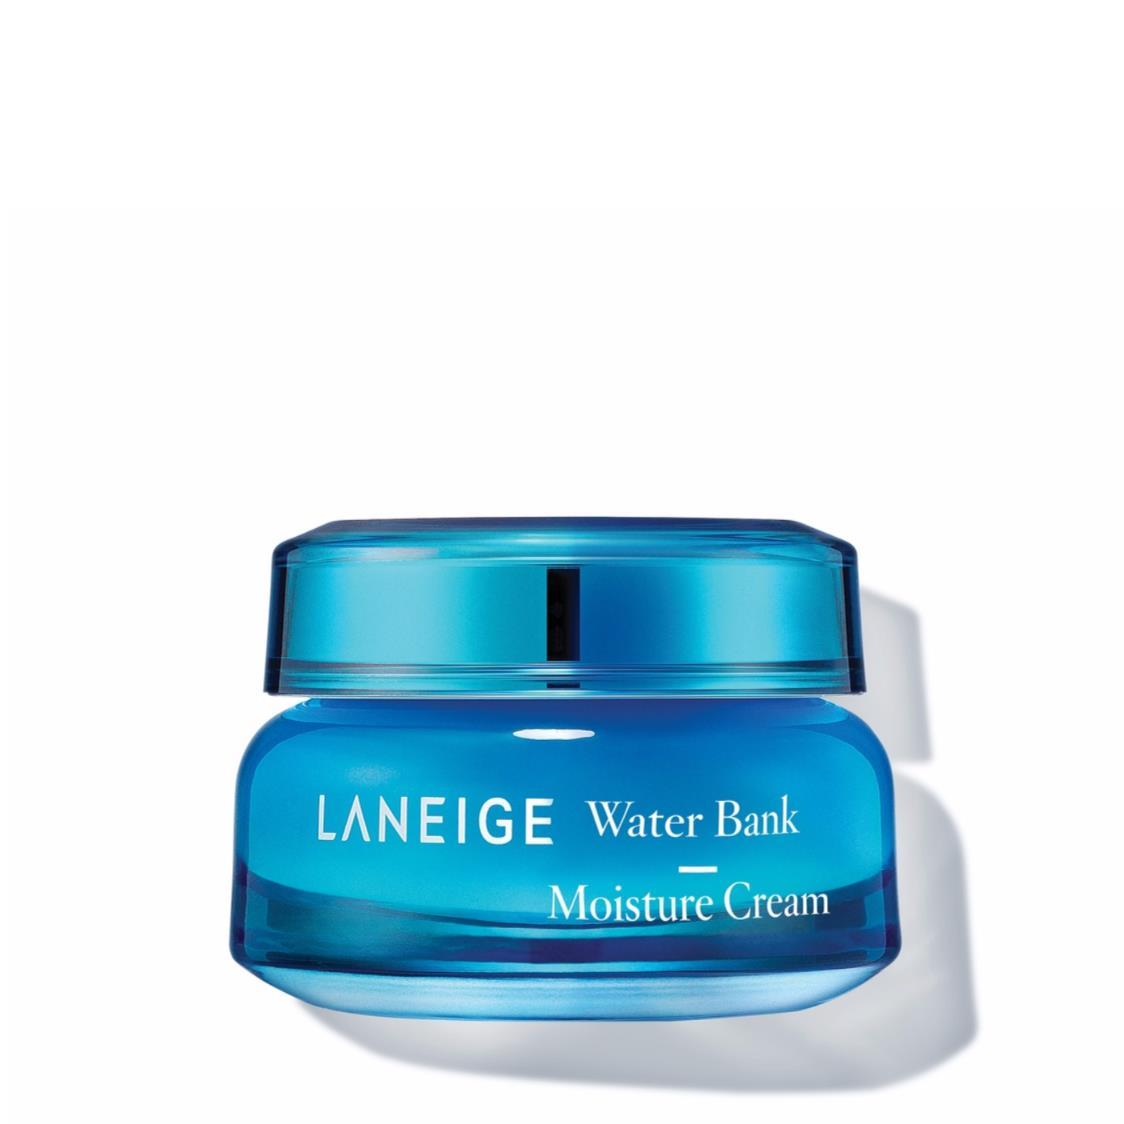 Water Bank Moisture Cream 50ml